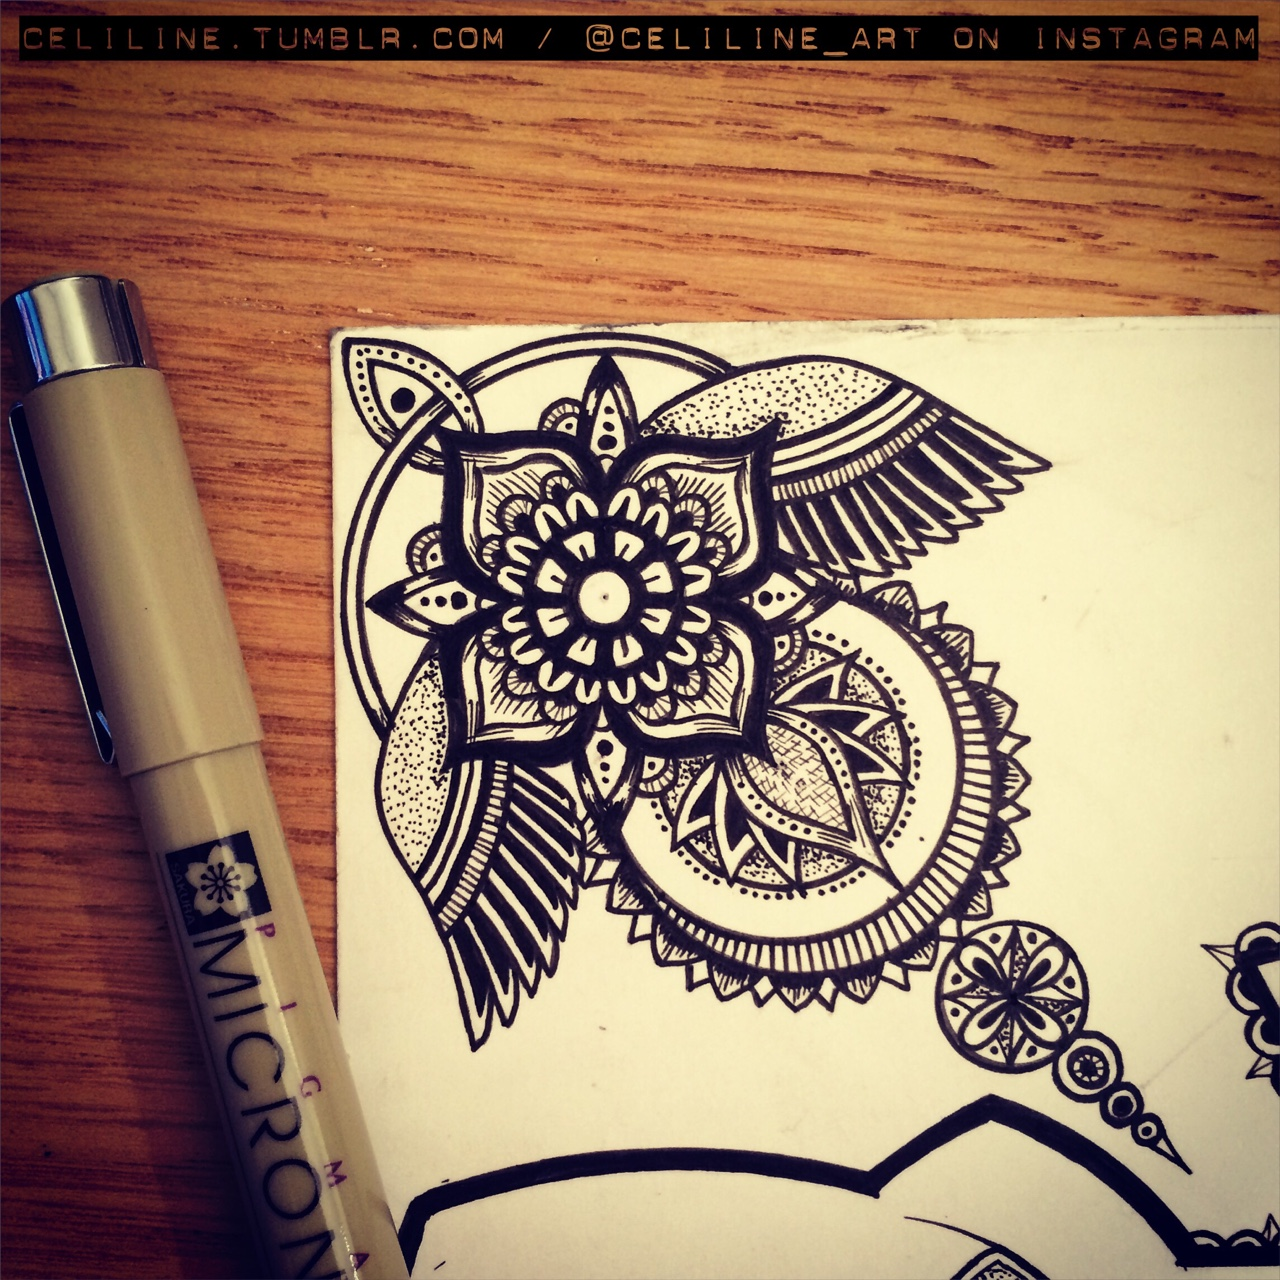 11-Celiline-Hand-Drawn-Zentangle-Doodles-Illustrations-Drawings-www-designstack-co